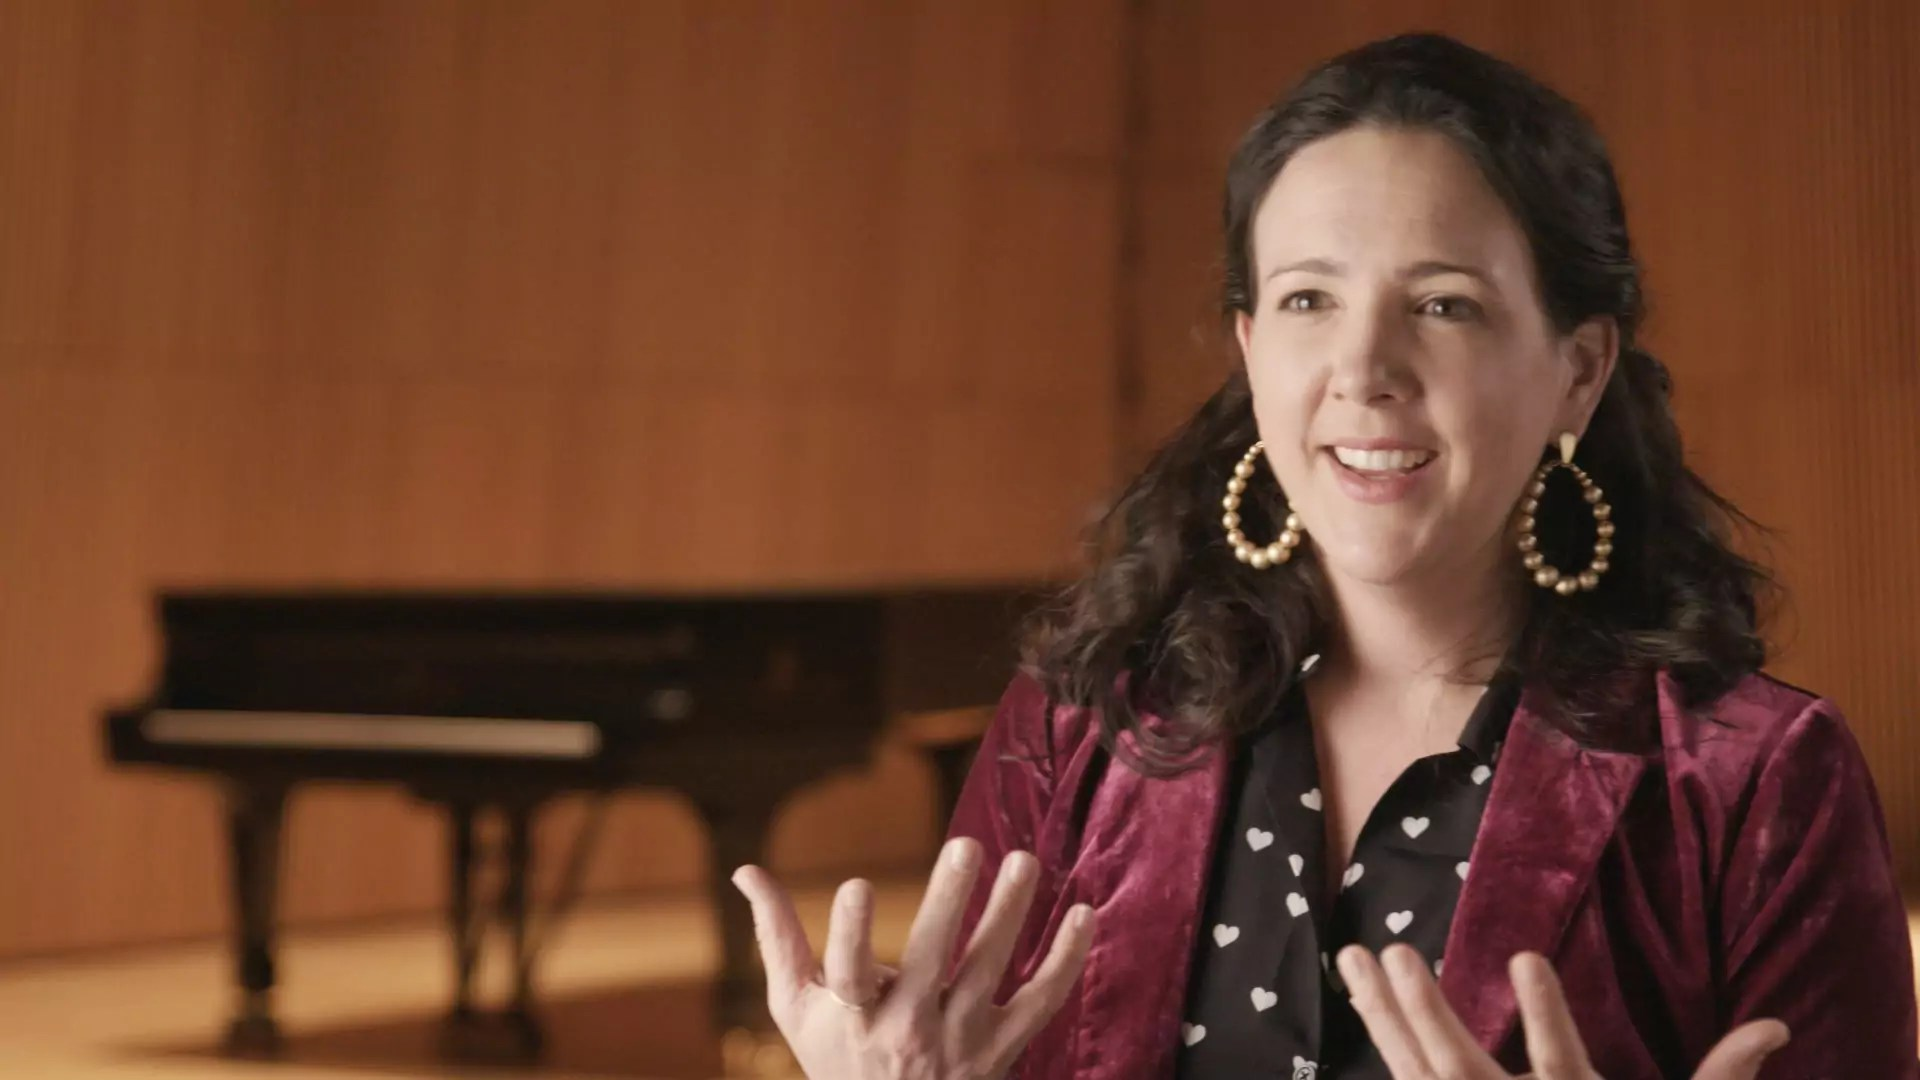 A woman sitting in front of an piano during an interview